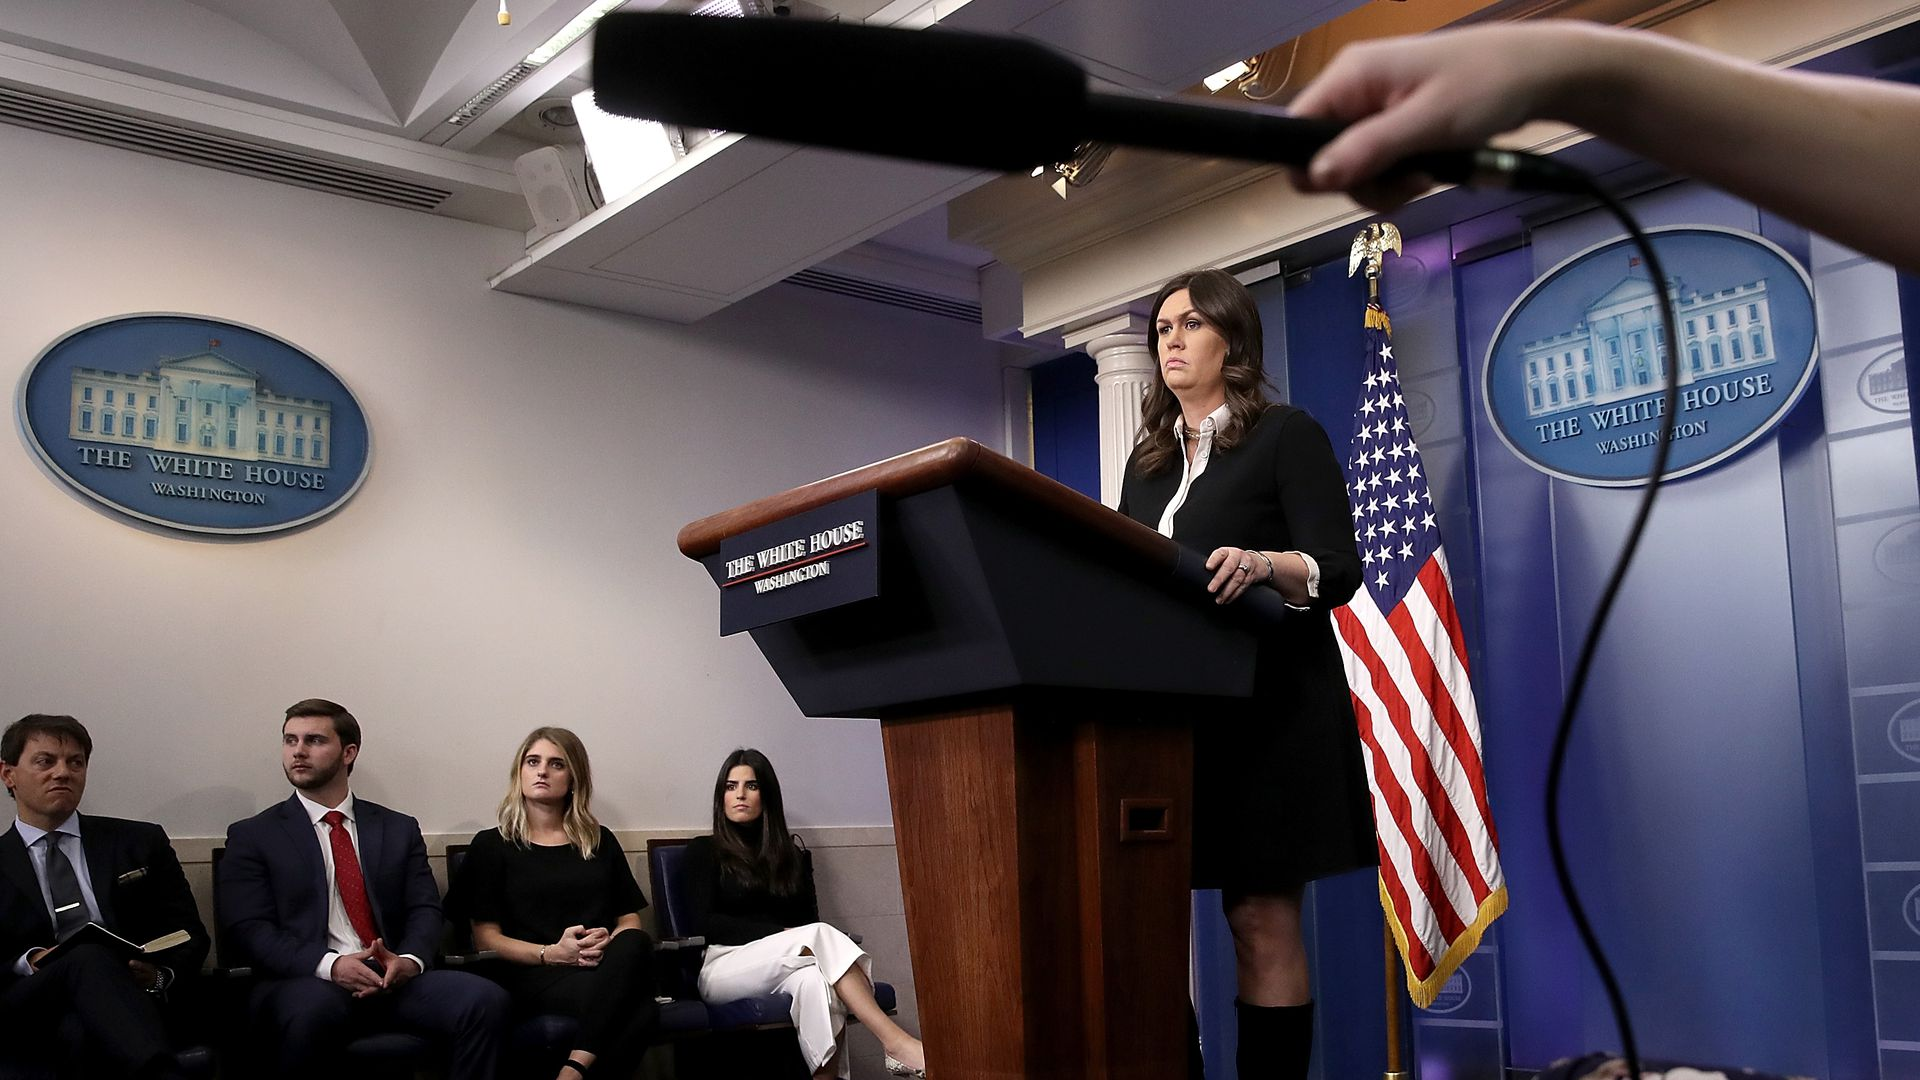 Sarah Sanders during the White House press briefing on January 17.